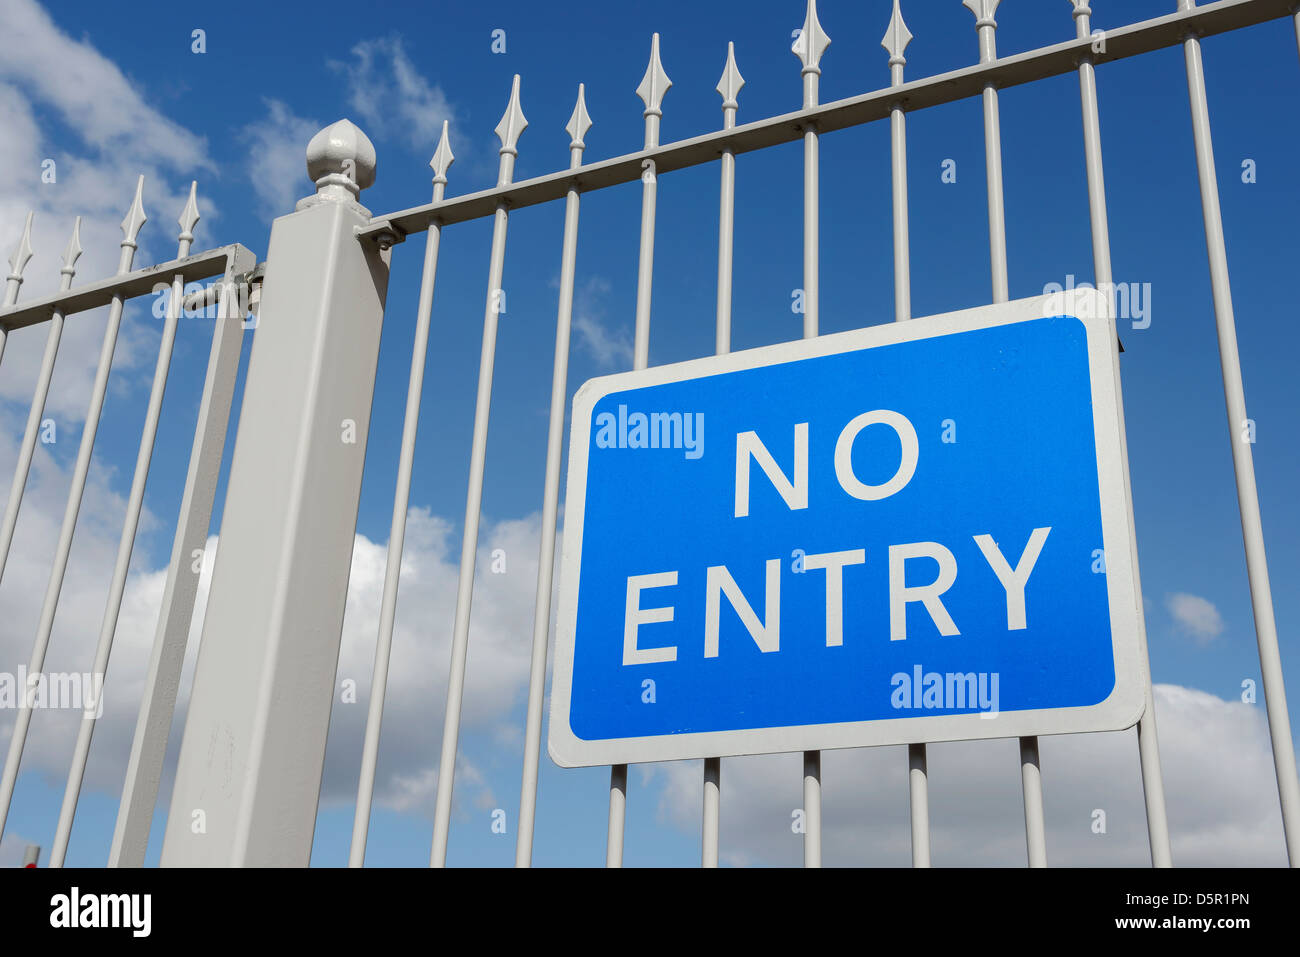 No Entry sign on metal railings - Stock Image